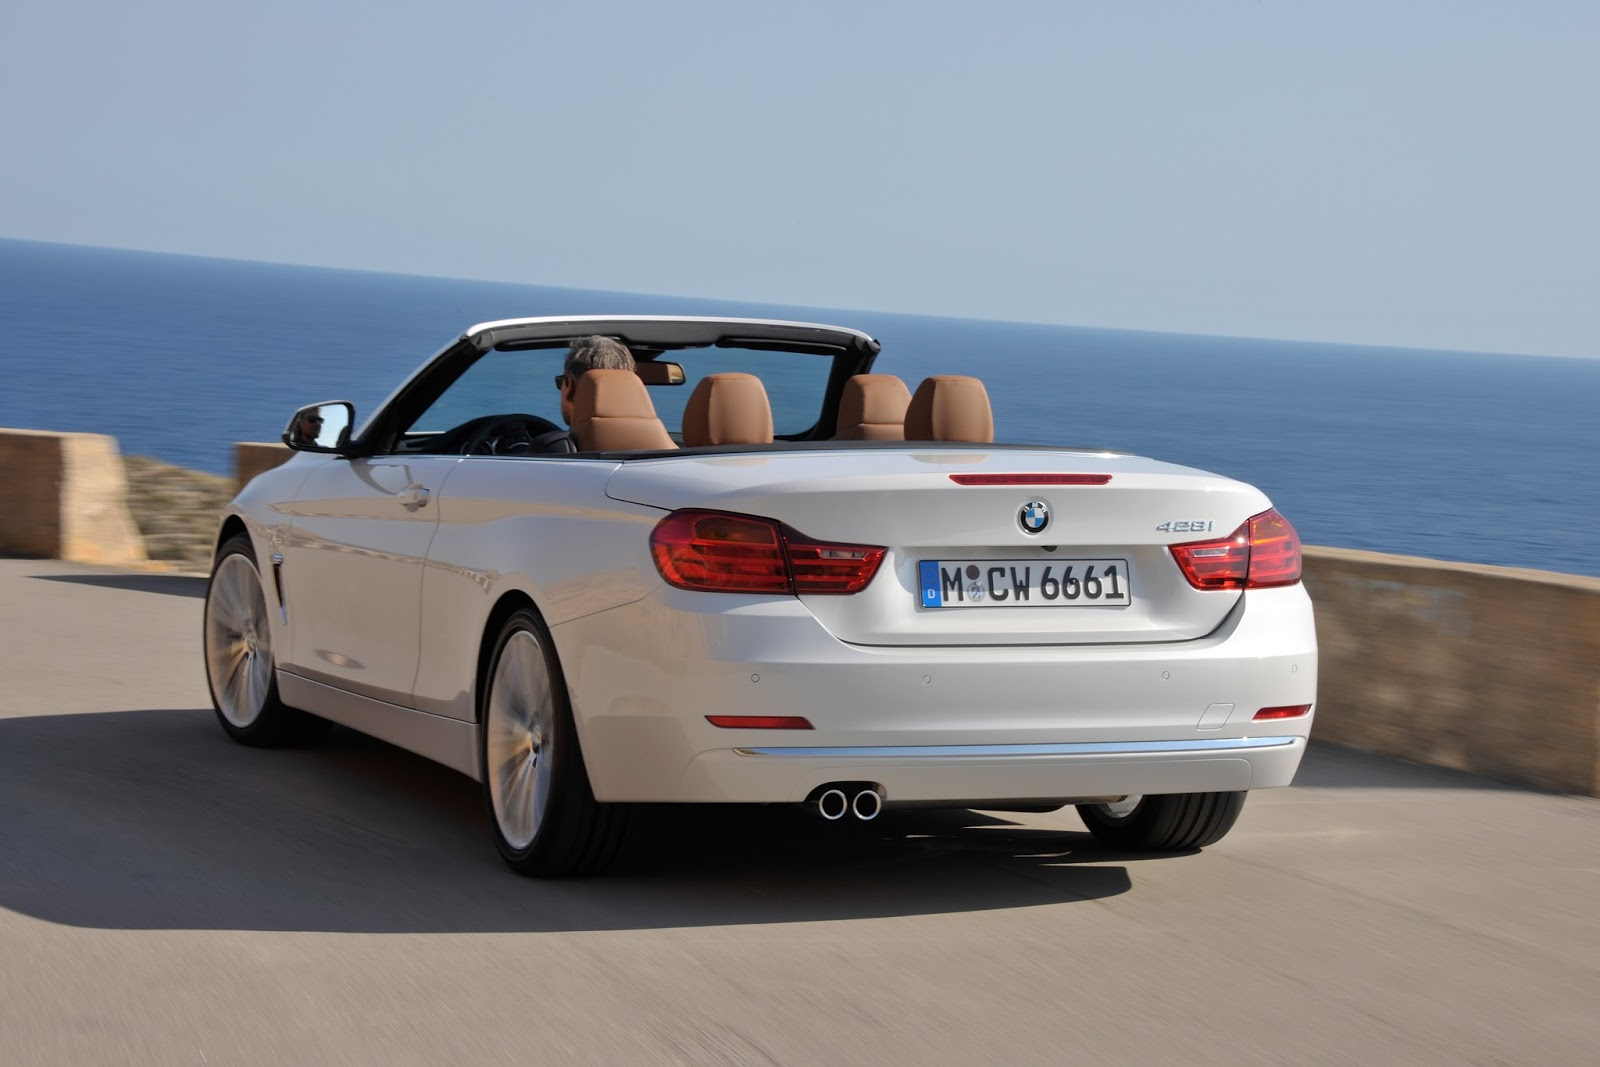 The 2017 Bmw 4 Series Convertible Will Again Feature A Three Piece Retractable Hardtop With New Features And Functionality